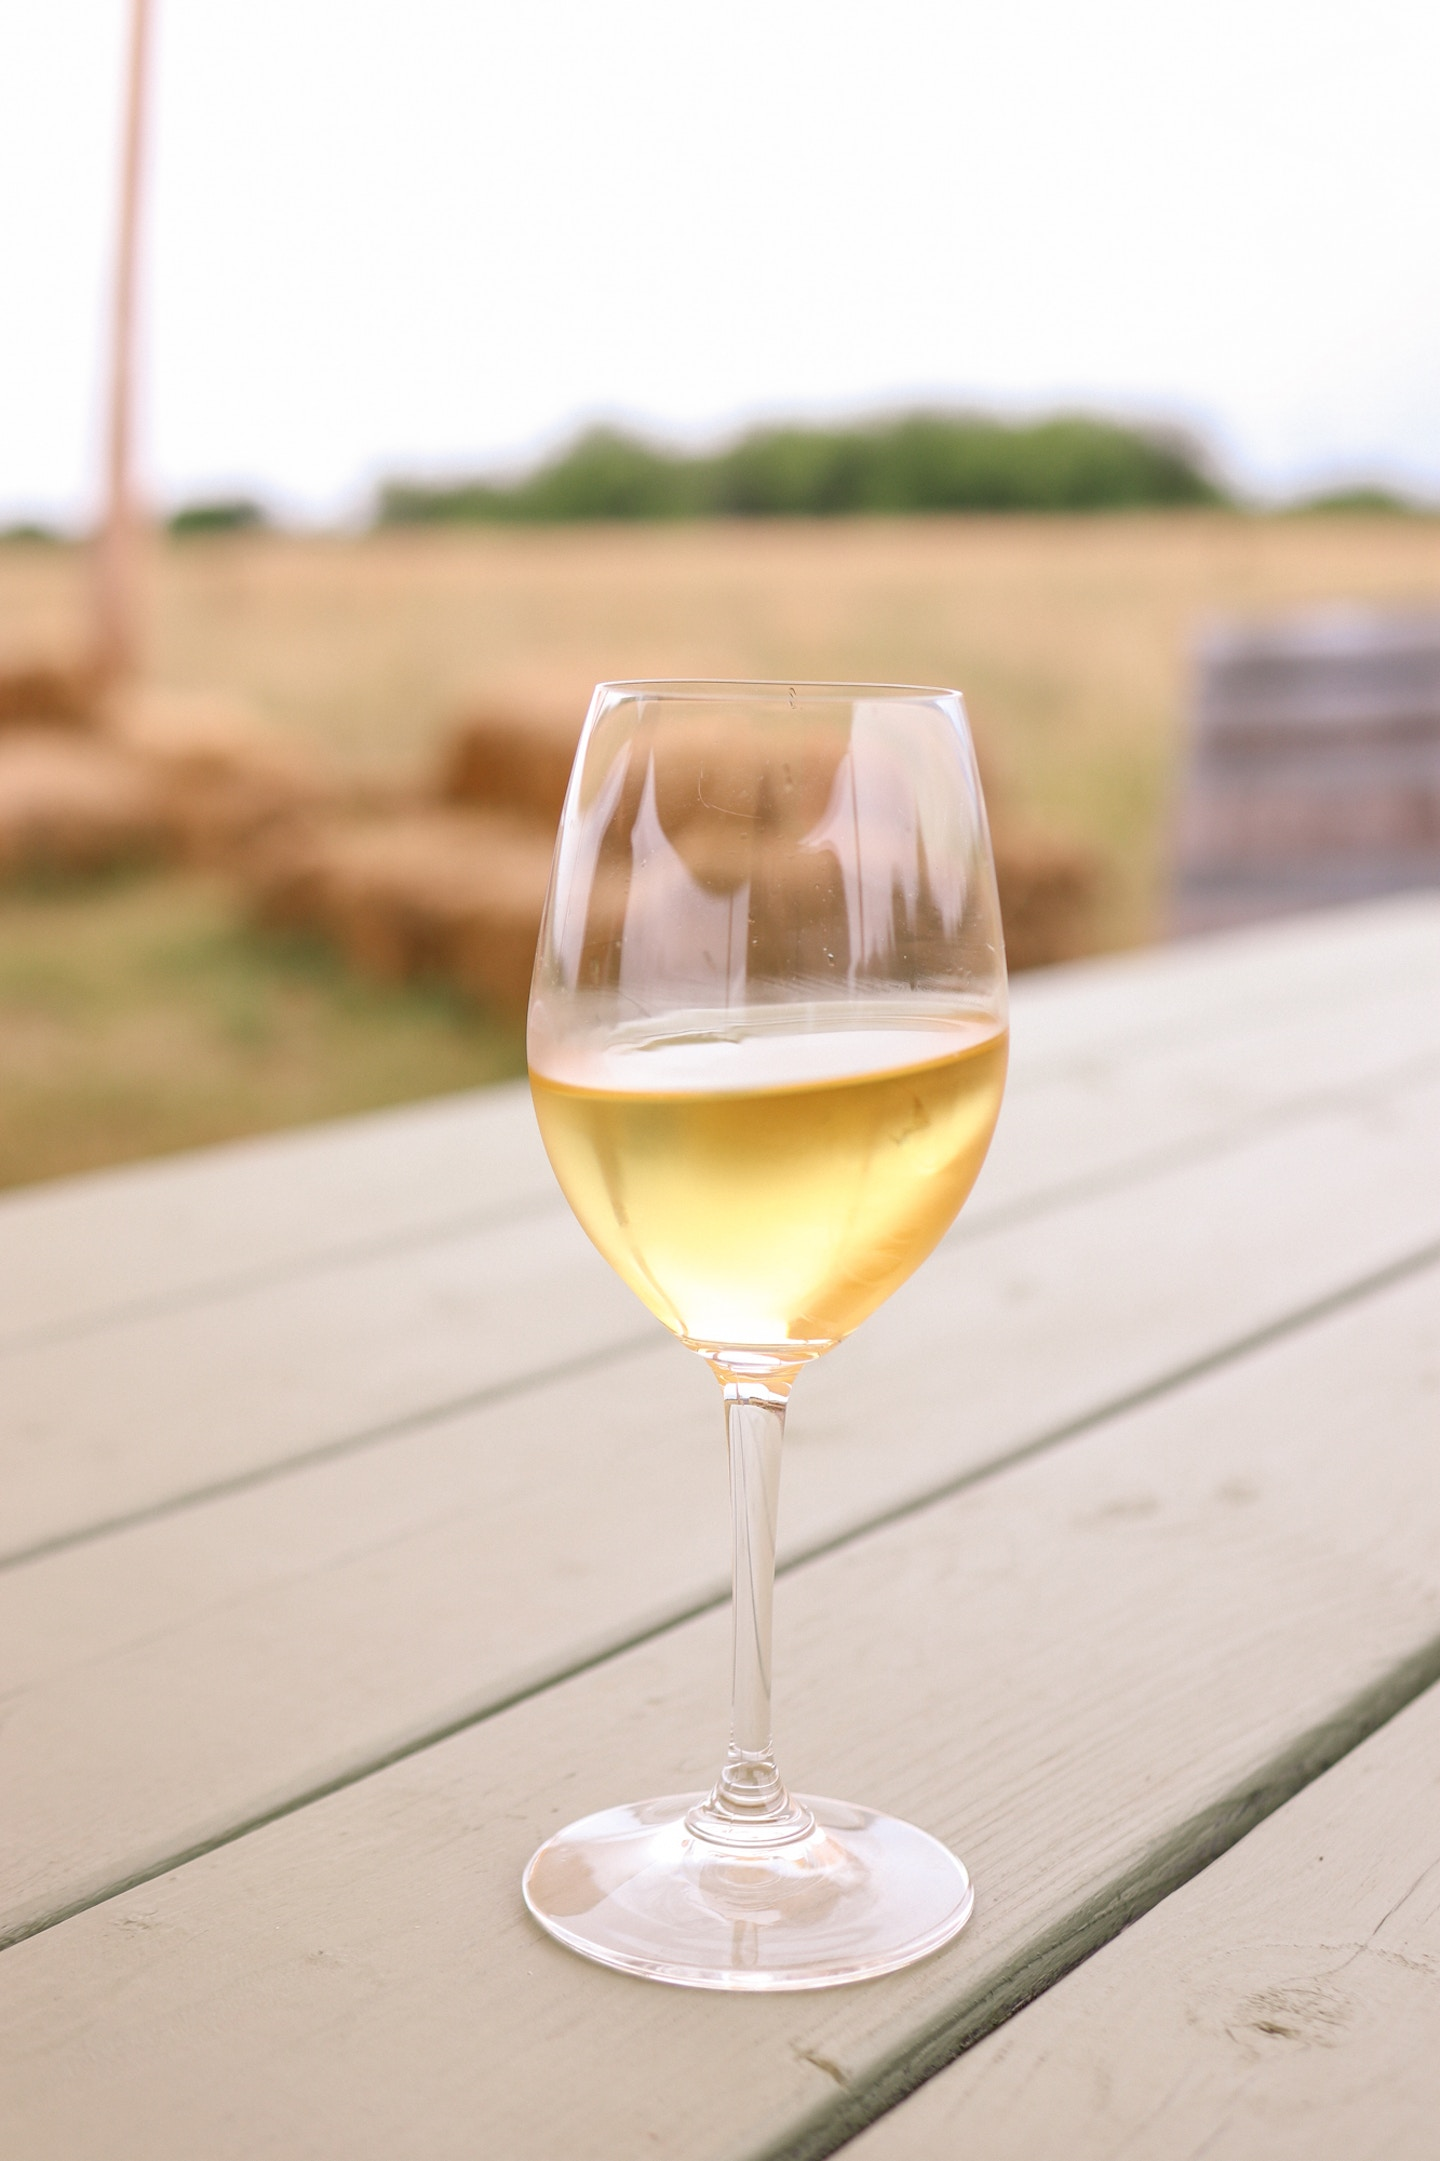 Best Wineries in Prince Edward County: Trail Estate Winery Foxcroft Chardonnay is a beautiful wine. Learn more about this winery and 5 other spots in PEC!